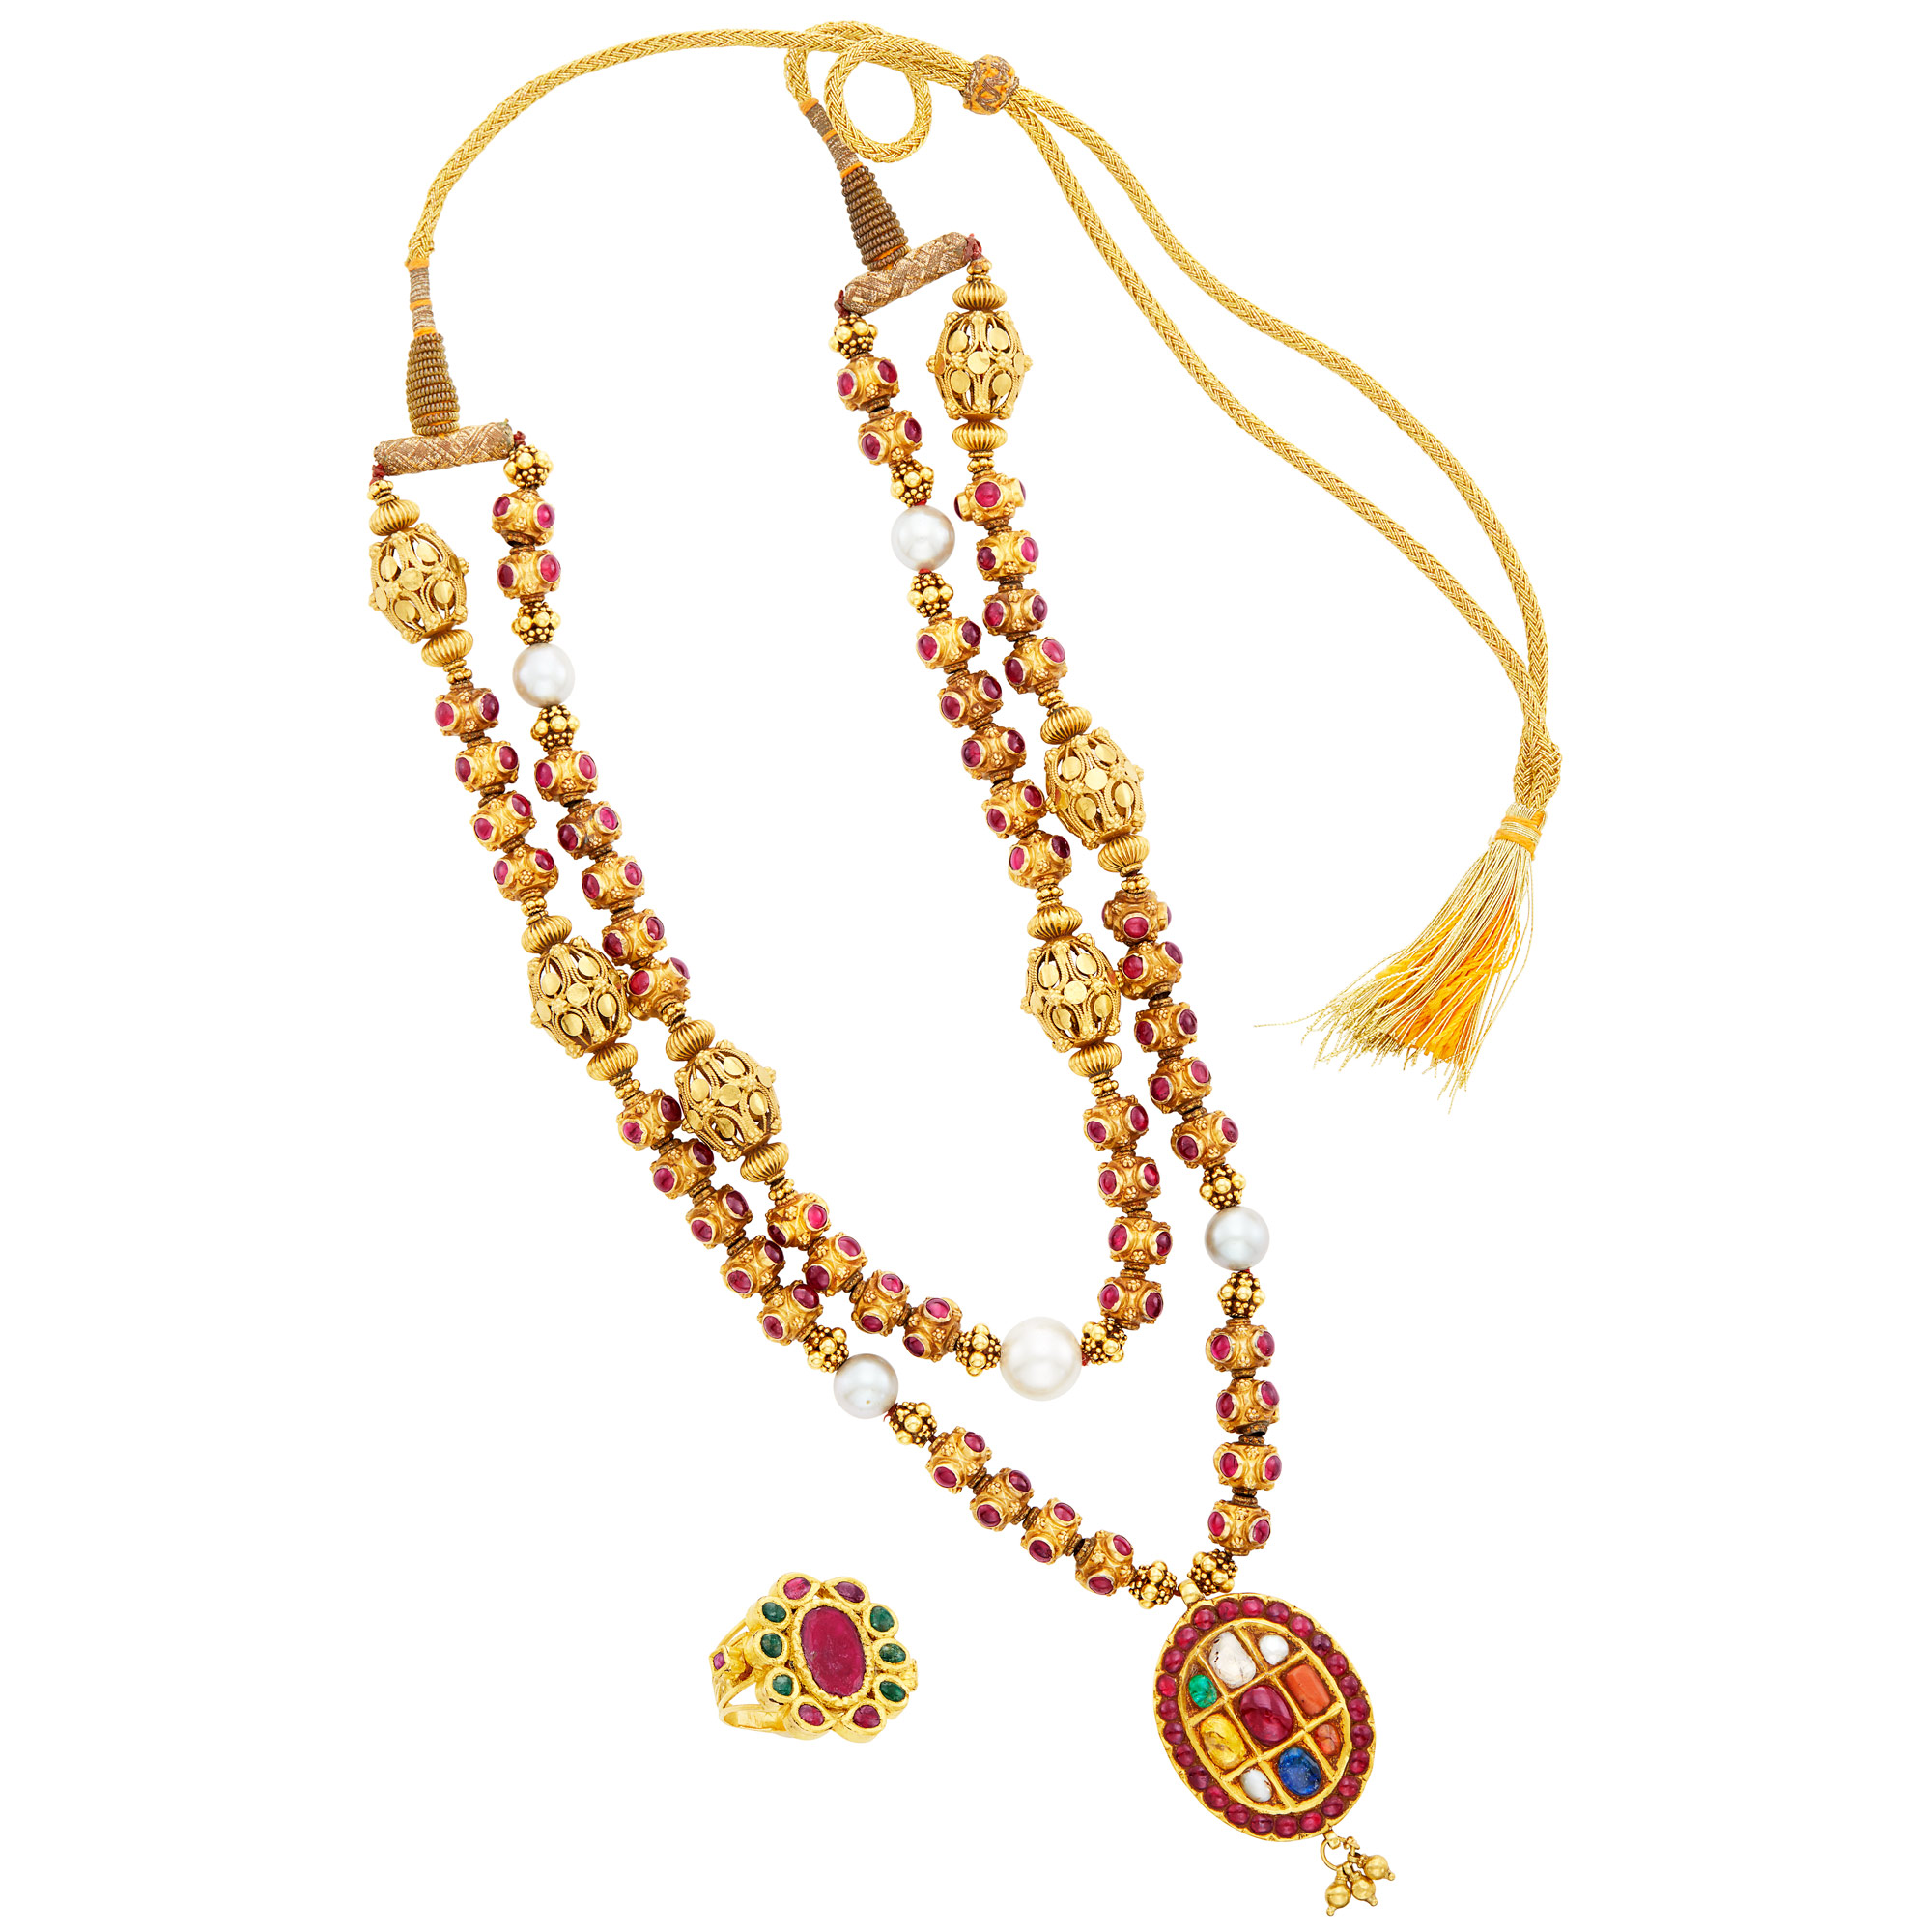 Lot image - Double Strand Indian Gold, Cabochon Ruby, Gem-Set and Cultured Pearl Pendant-Necklace on Cord and Ring